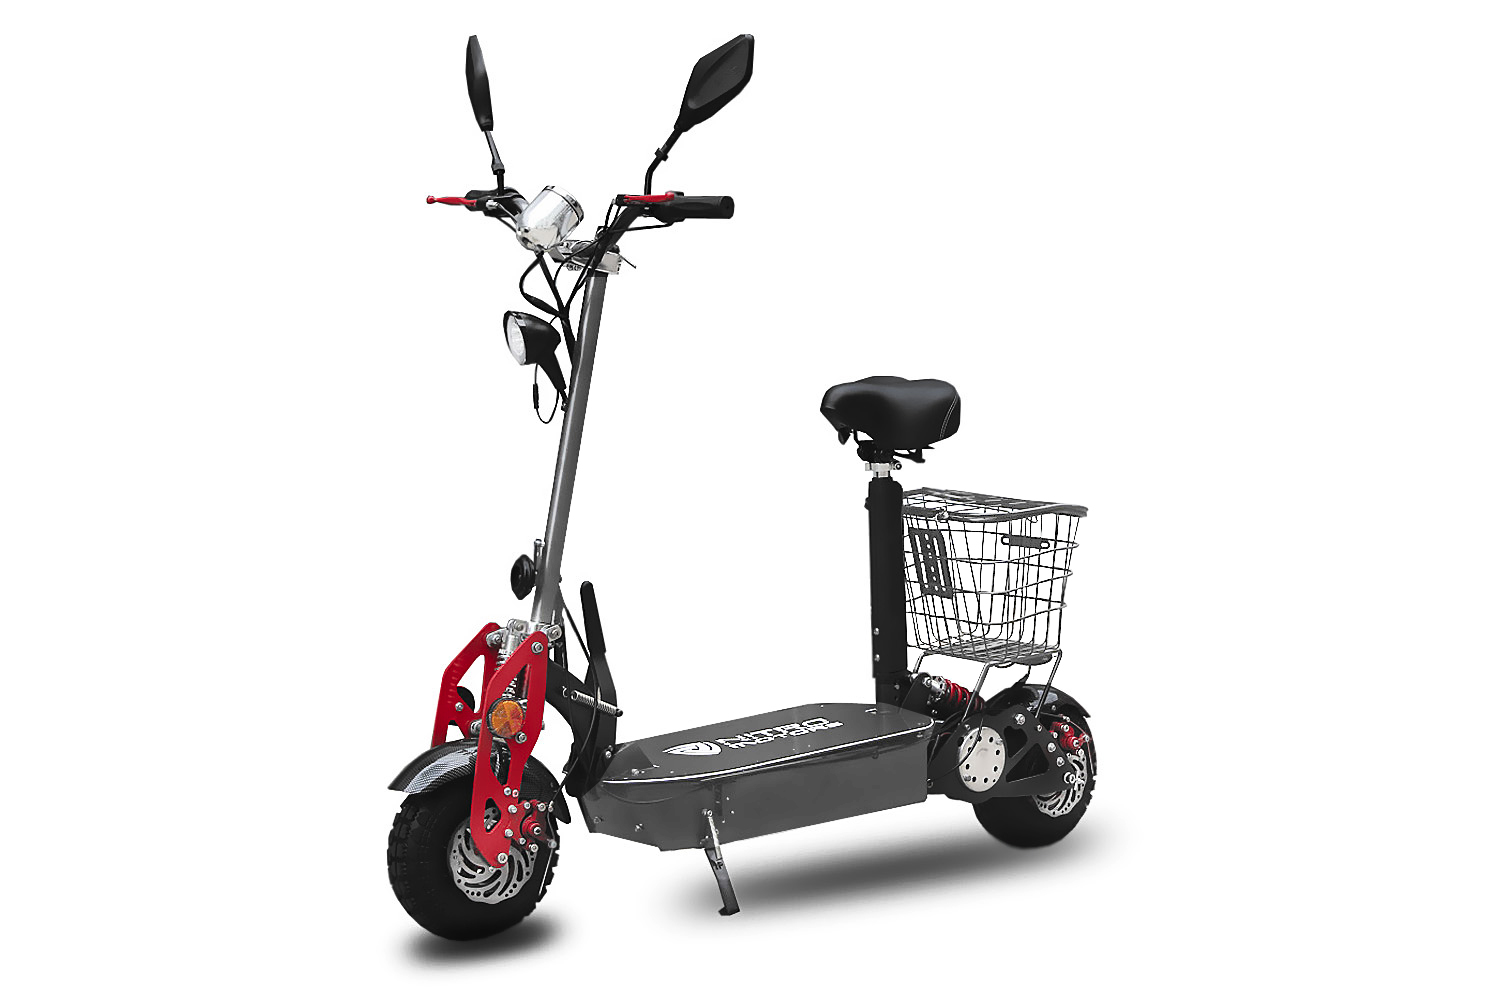 500w 36v xl twister eec scooter 36v 12ah mit 6 batterie. Black Bedroom Furniture Sets. Home Design Ideas